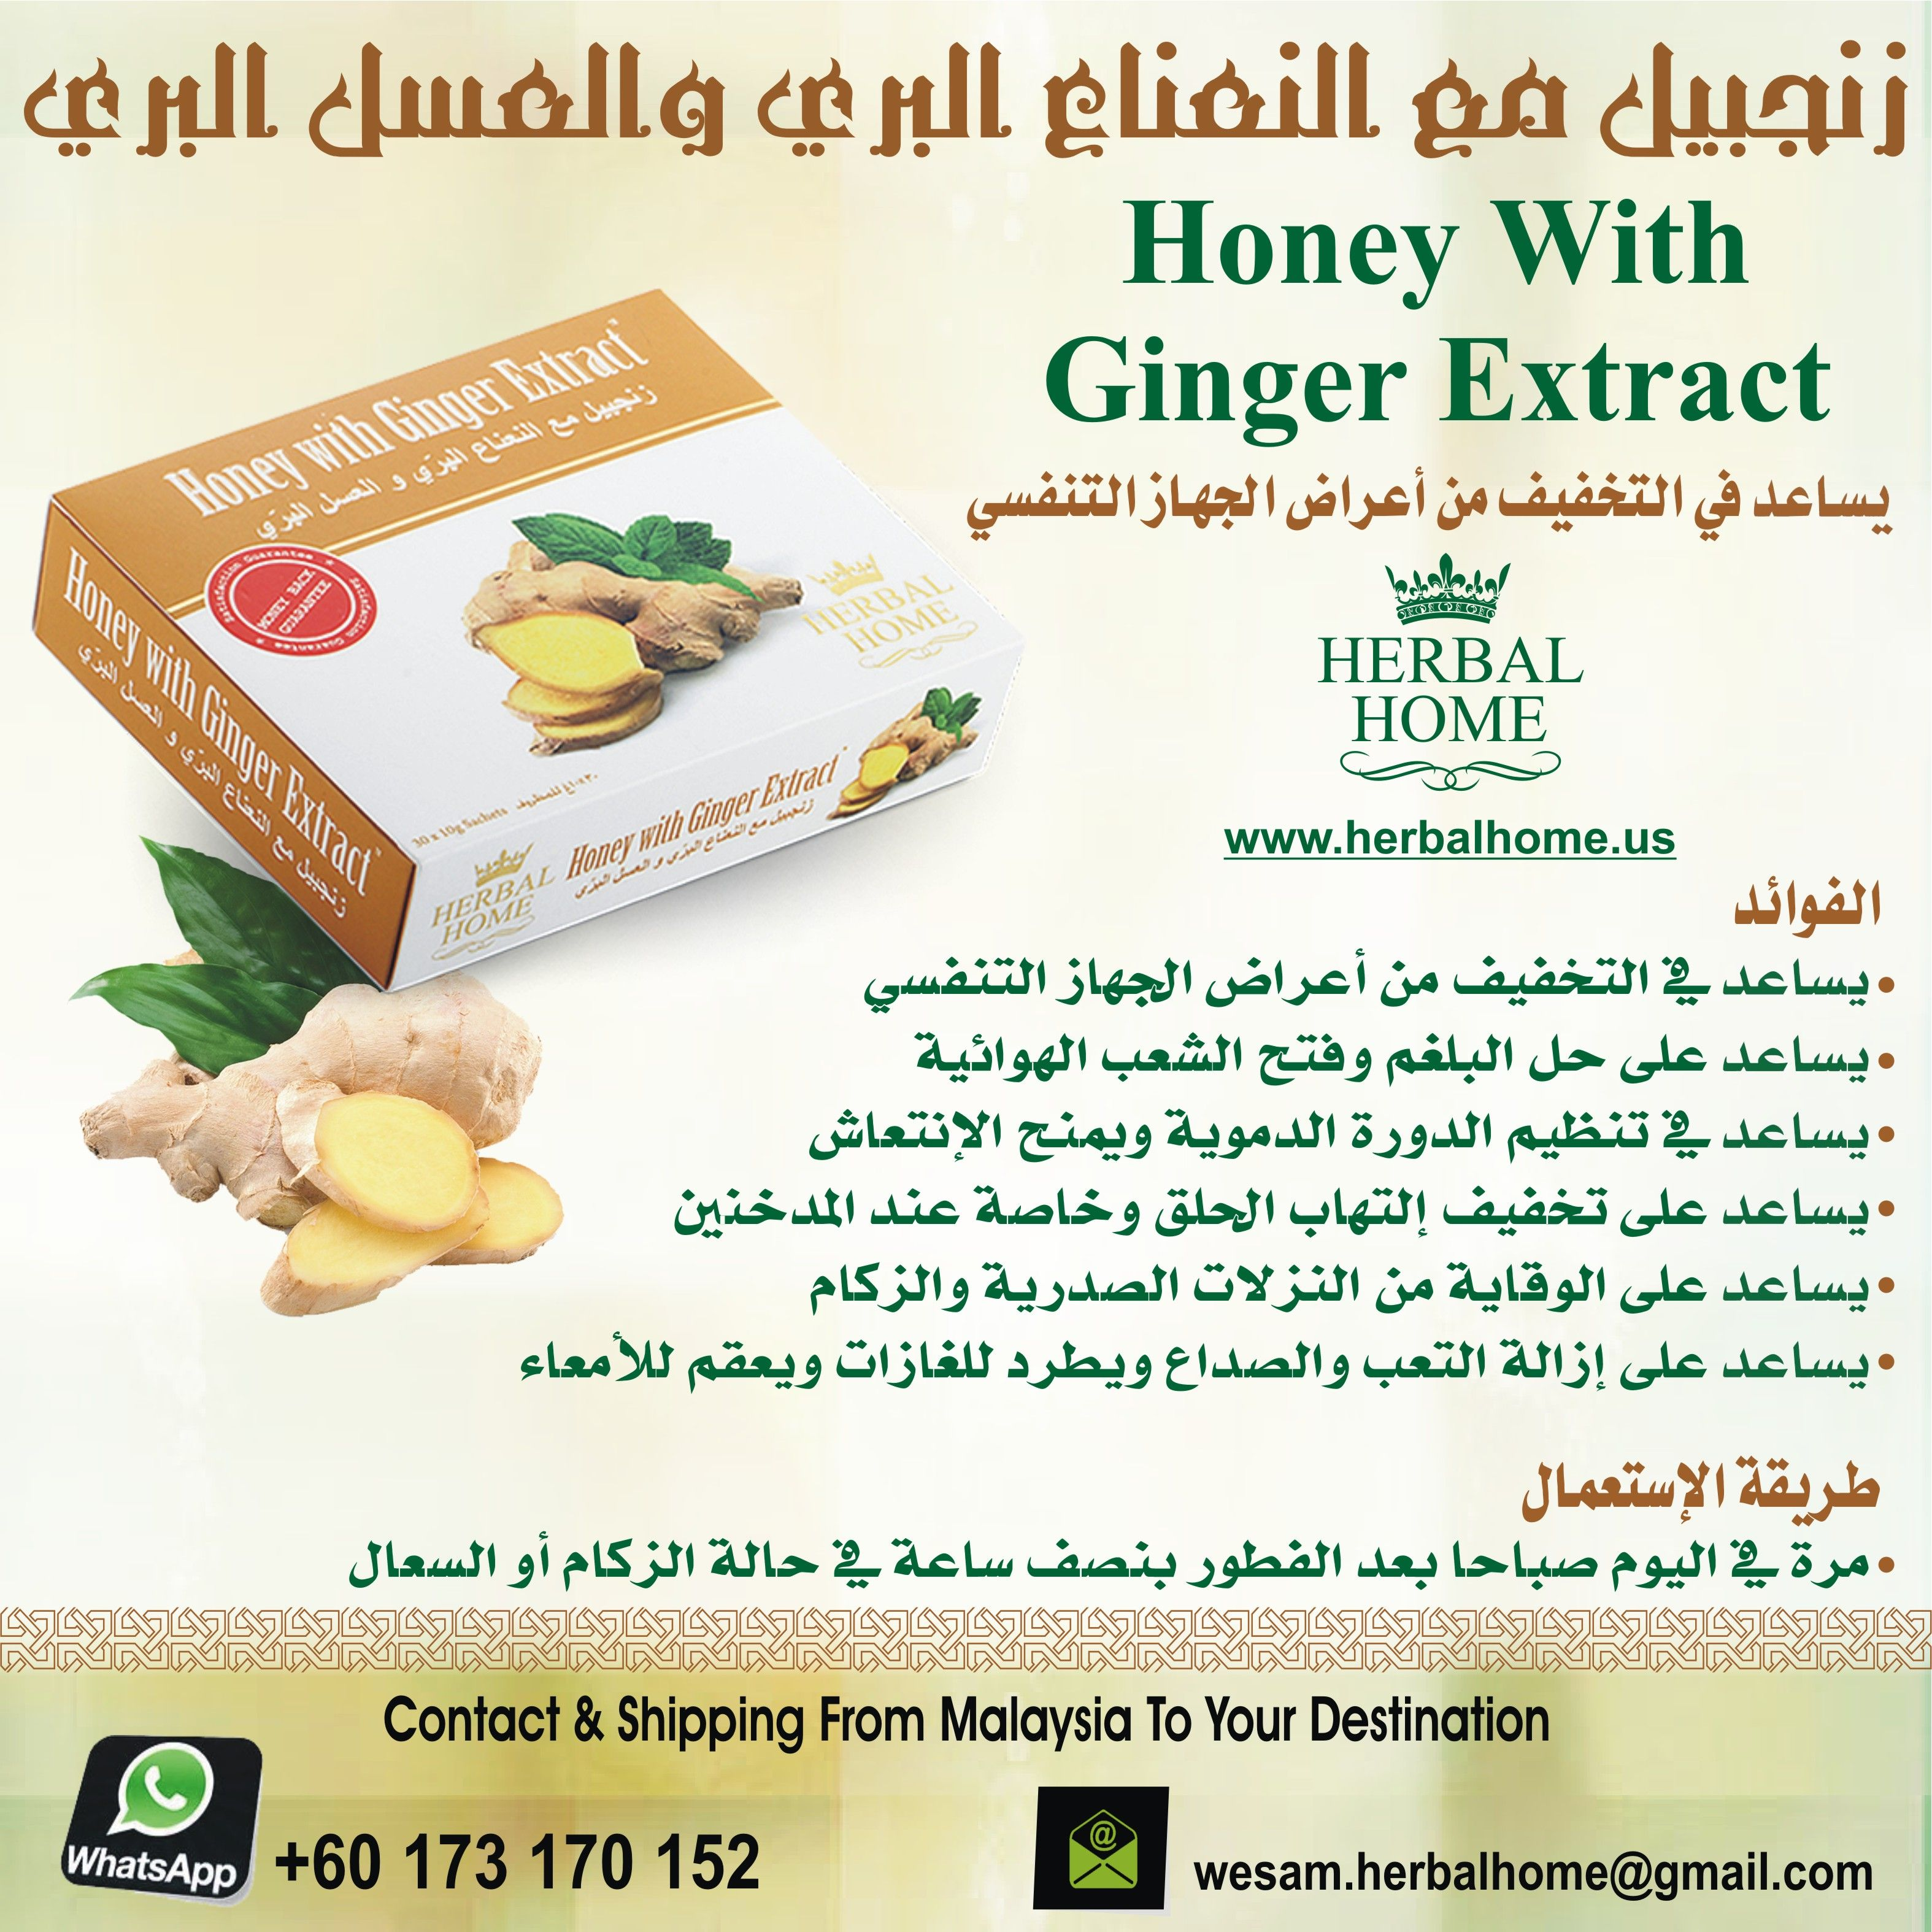 For More Information Please Visit Our Website Www Herbalhome Us Or Www Ismailradi Com Whatsapp 60173170152 Ginger Extract Herbalism Ginger